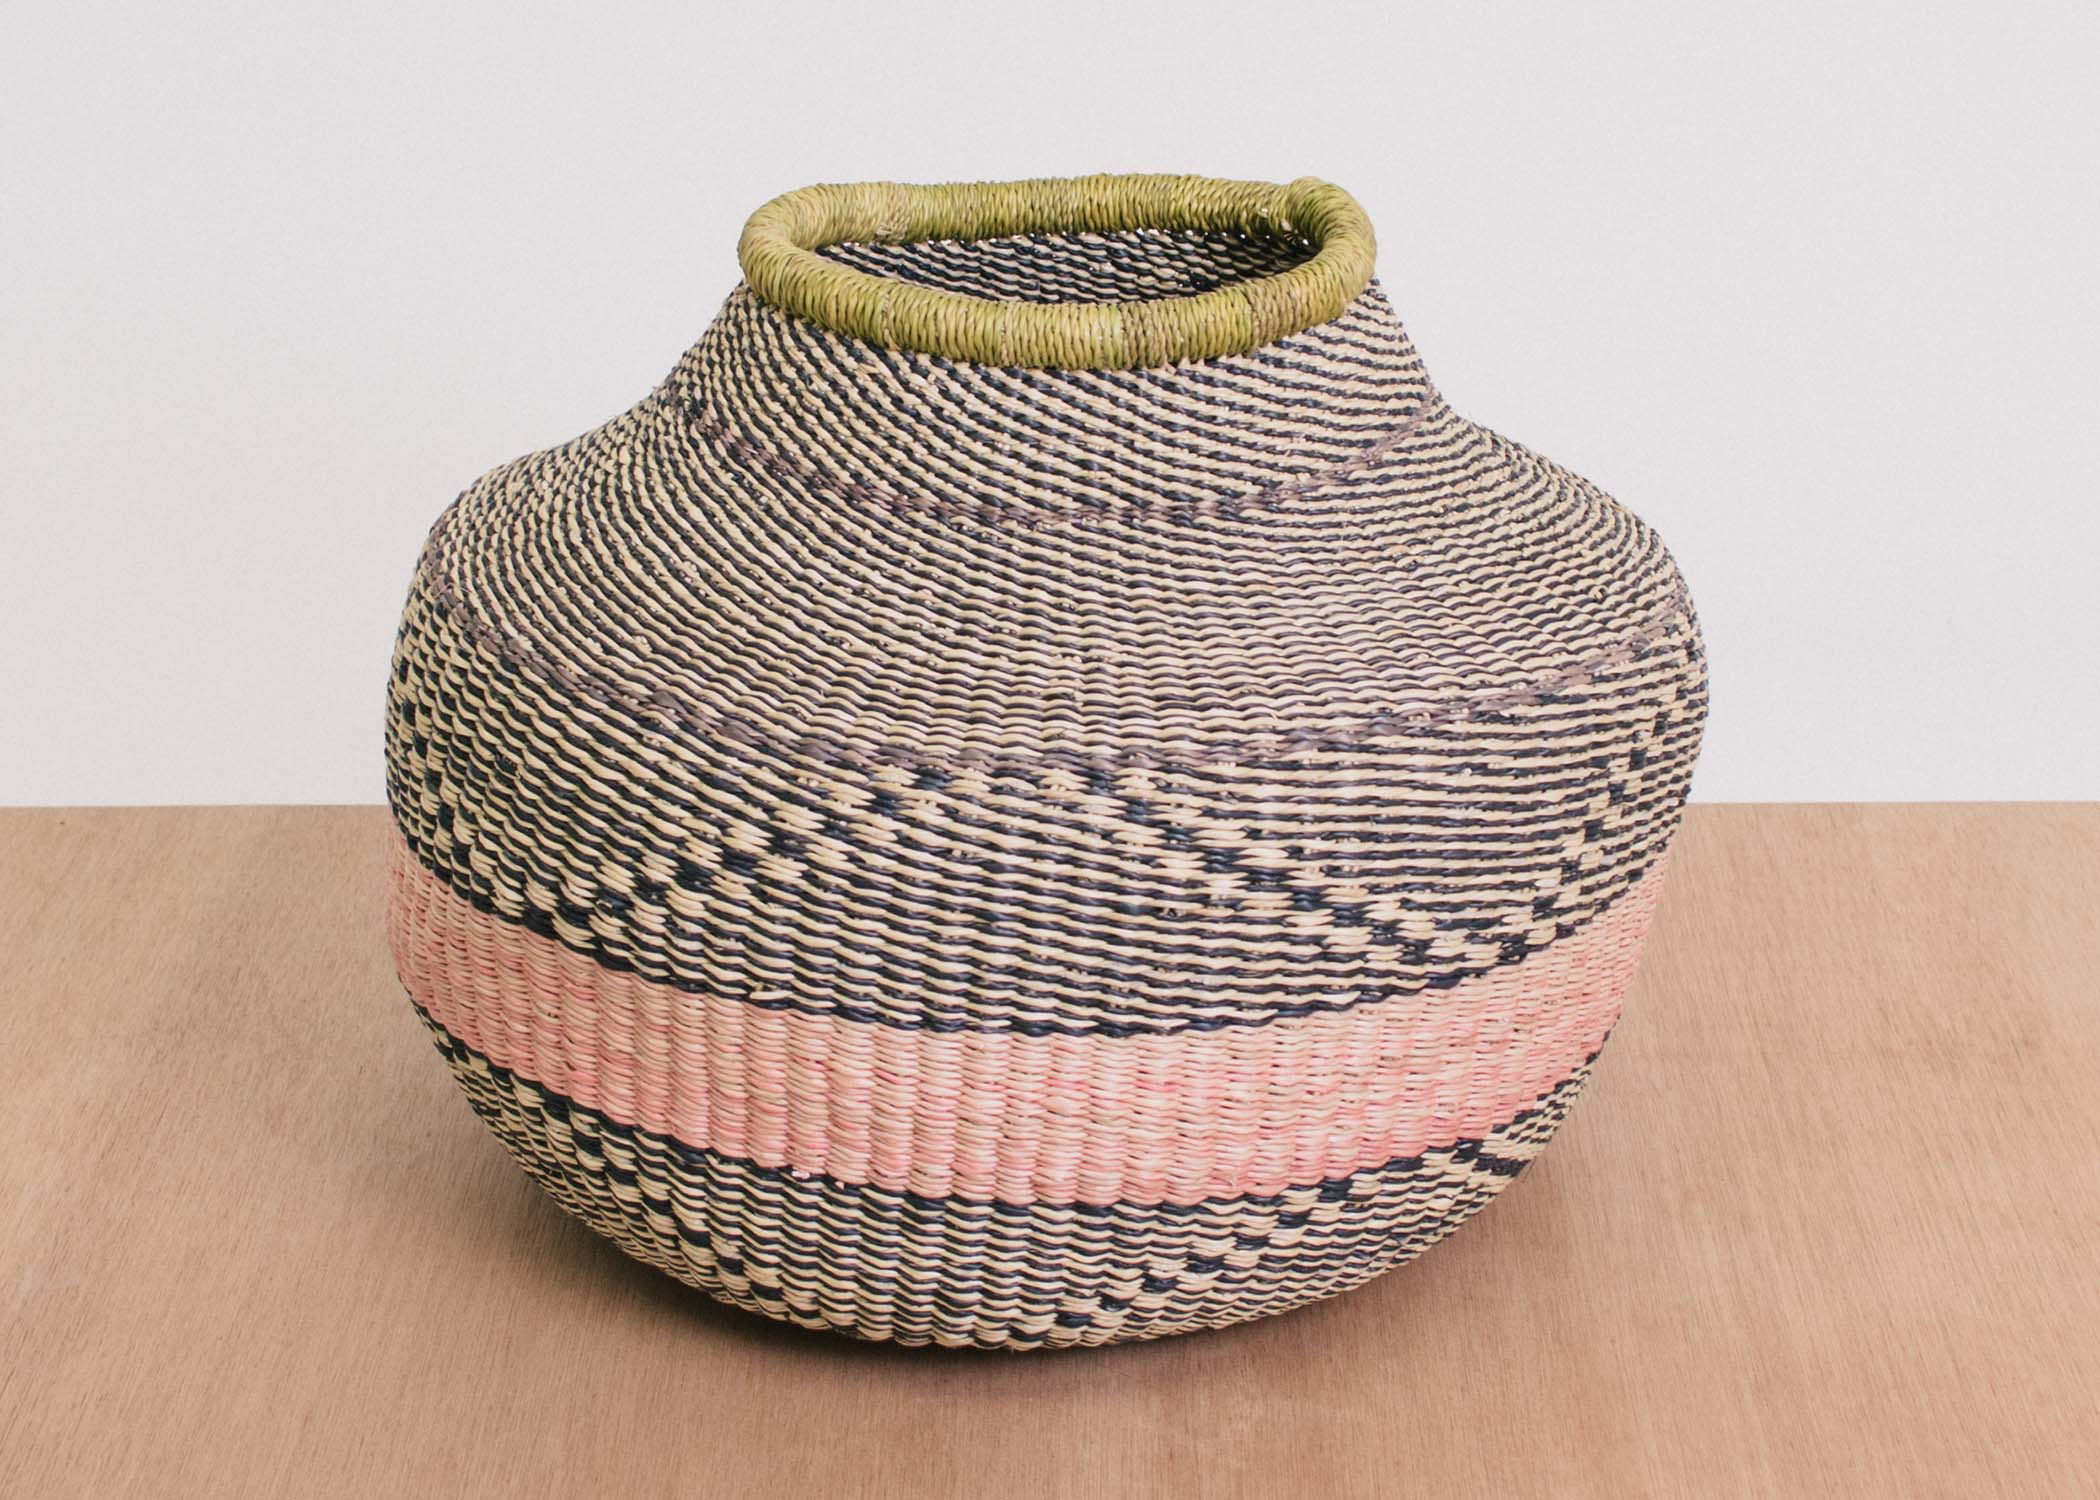 Tumaini Grass Short Pot - KAZI